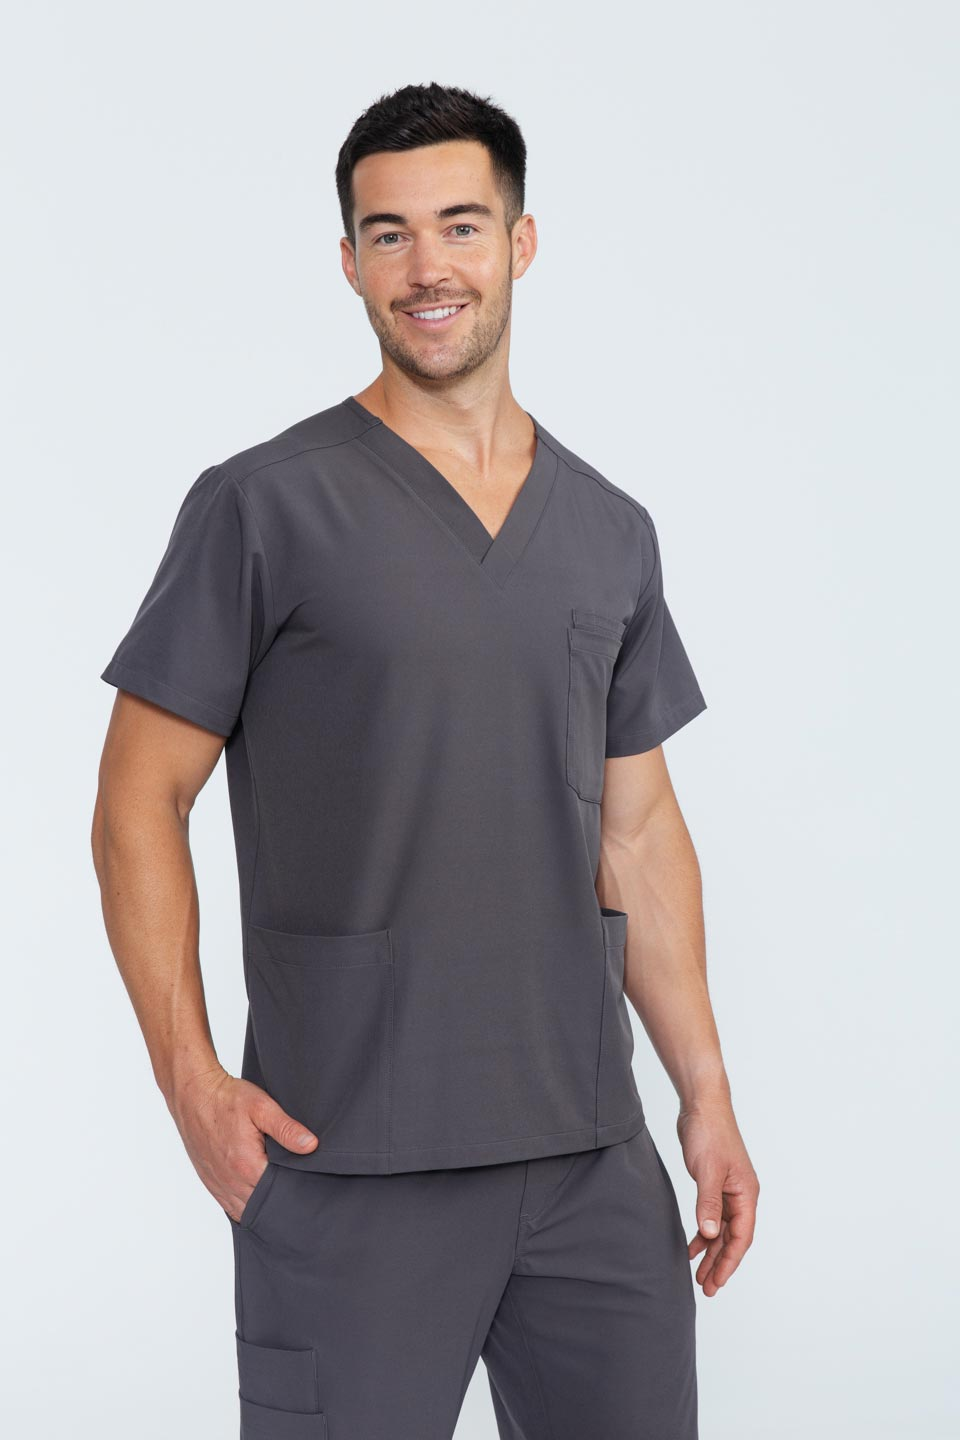 Kalea - Mens Rhapsody Scrub Top - Gray